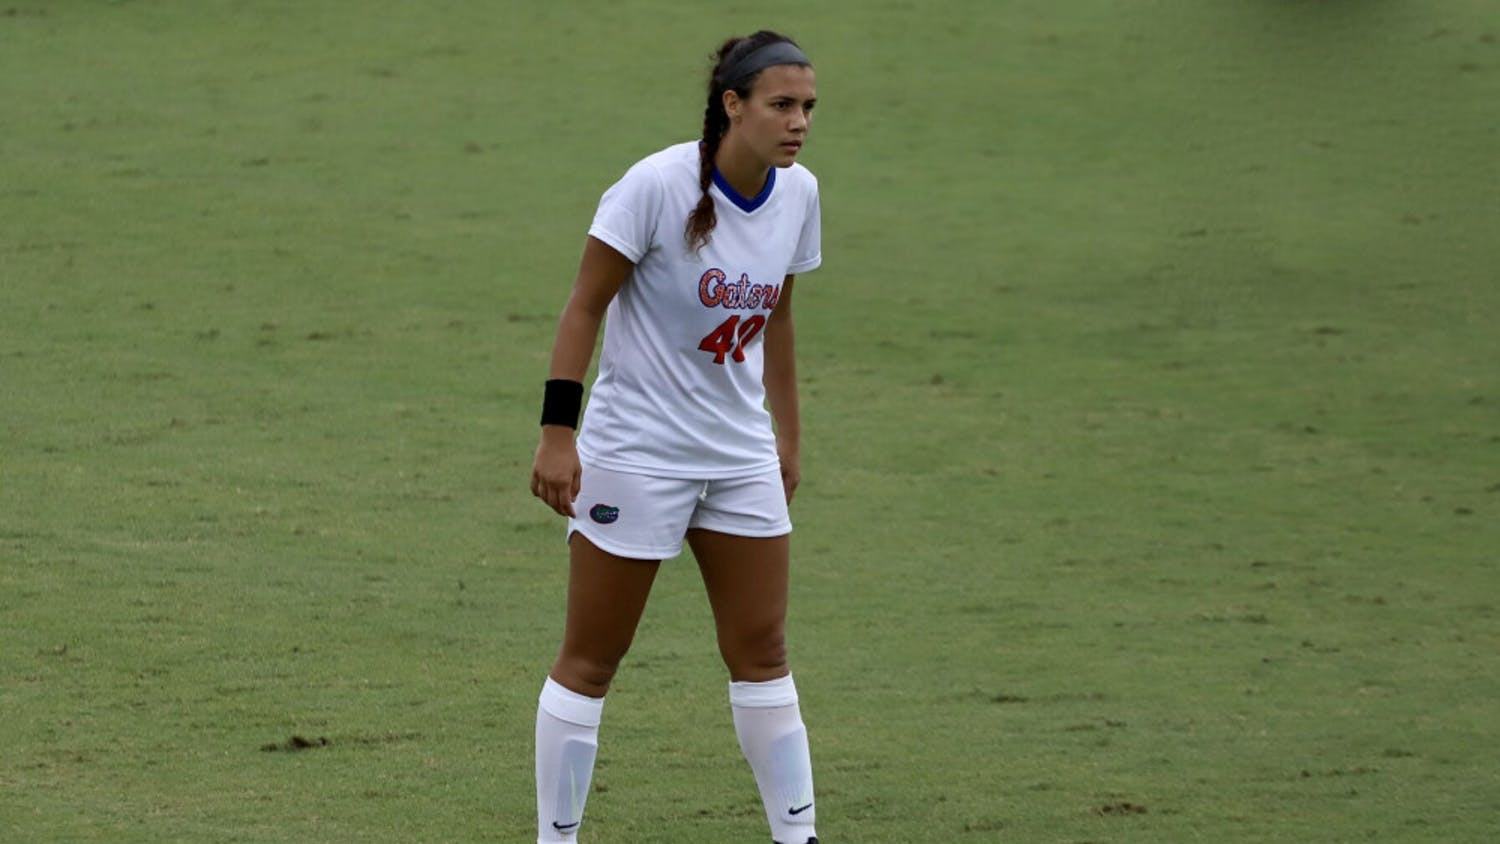 Alivia Gonzalez, pictured during her sophomore year, scored the game-winning goal Sunday afternoon versus Florida Gulf Coast University.